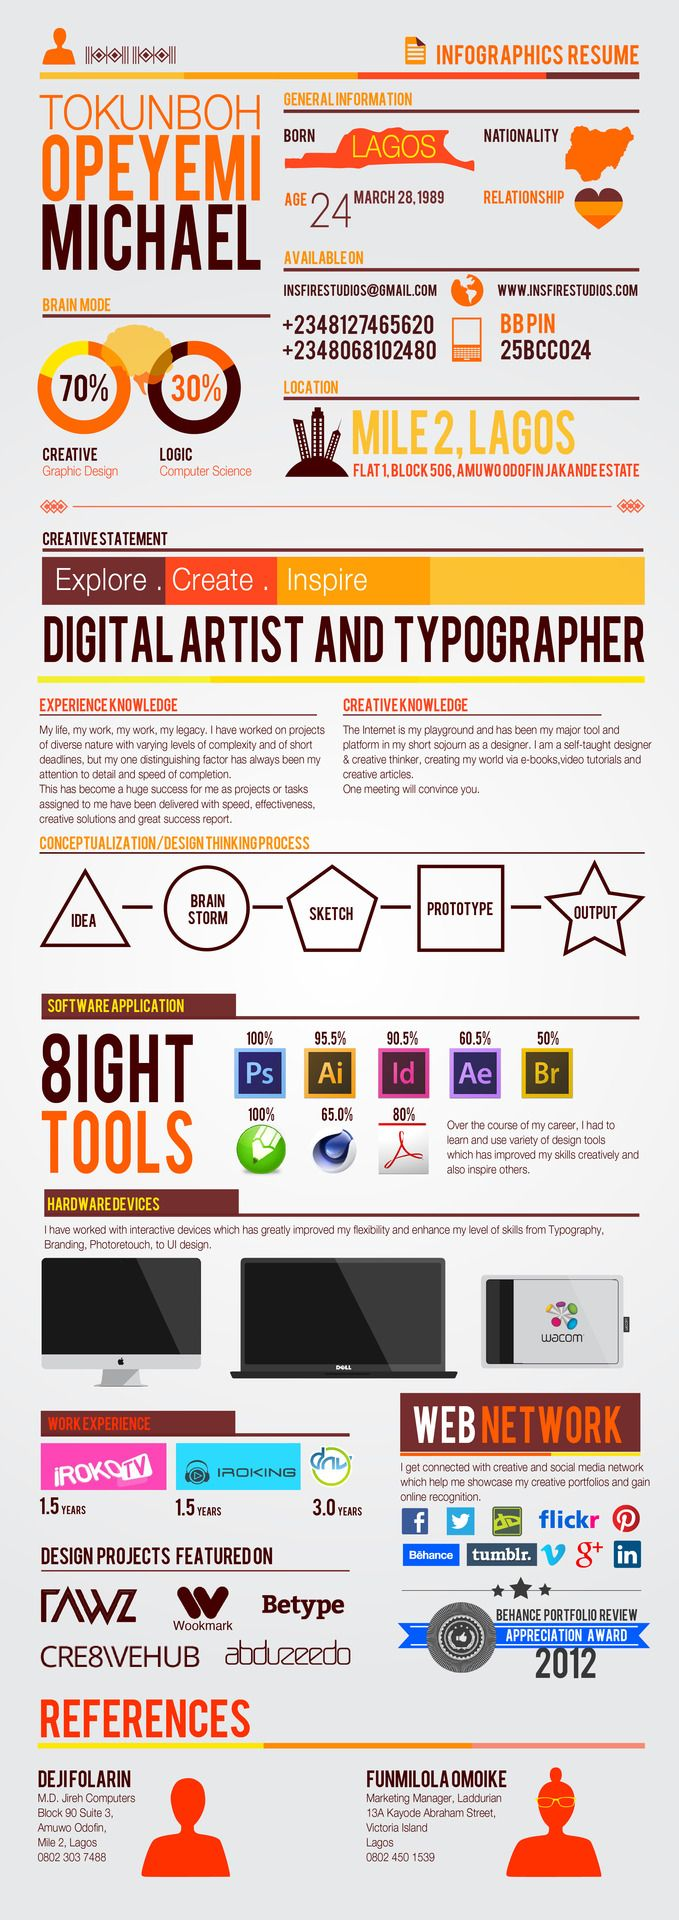 Opposenewapstandardsus  Ravishing  Ideas About Infographic Resume On Pinterest  My Portfolio  With Extraordinary  Ideas About Infographic Resume On Pinterest  My Portfolio Resume And Resume Design With Beautiful Resume For Social Worker Also Design Engineer Resume In Addition What Looks Good On A Resume And Worship Leader Resume As Well As Manager Resume Skills Additionally Objective Example For Resume From Pinterestcom With Opposenewapstandardsus  Extraordinary  Ideas About Infographic Resume On Pinterest  My Portfolio  With Beautiful  Ideas About Infographic Resume On Pinterest  My Portfolio Resume And Resume Design And Ravishing Resume For Social Worker Also Design Engineer Resume In Addition What Looks Good On A Resume From Pinterestcom